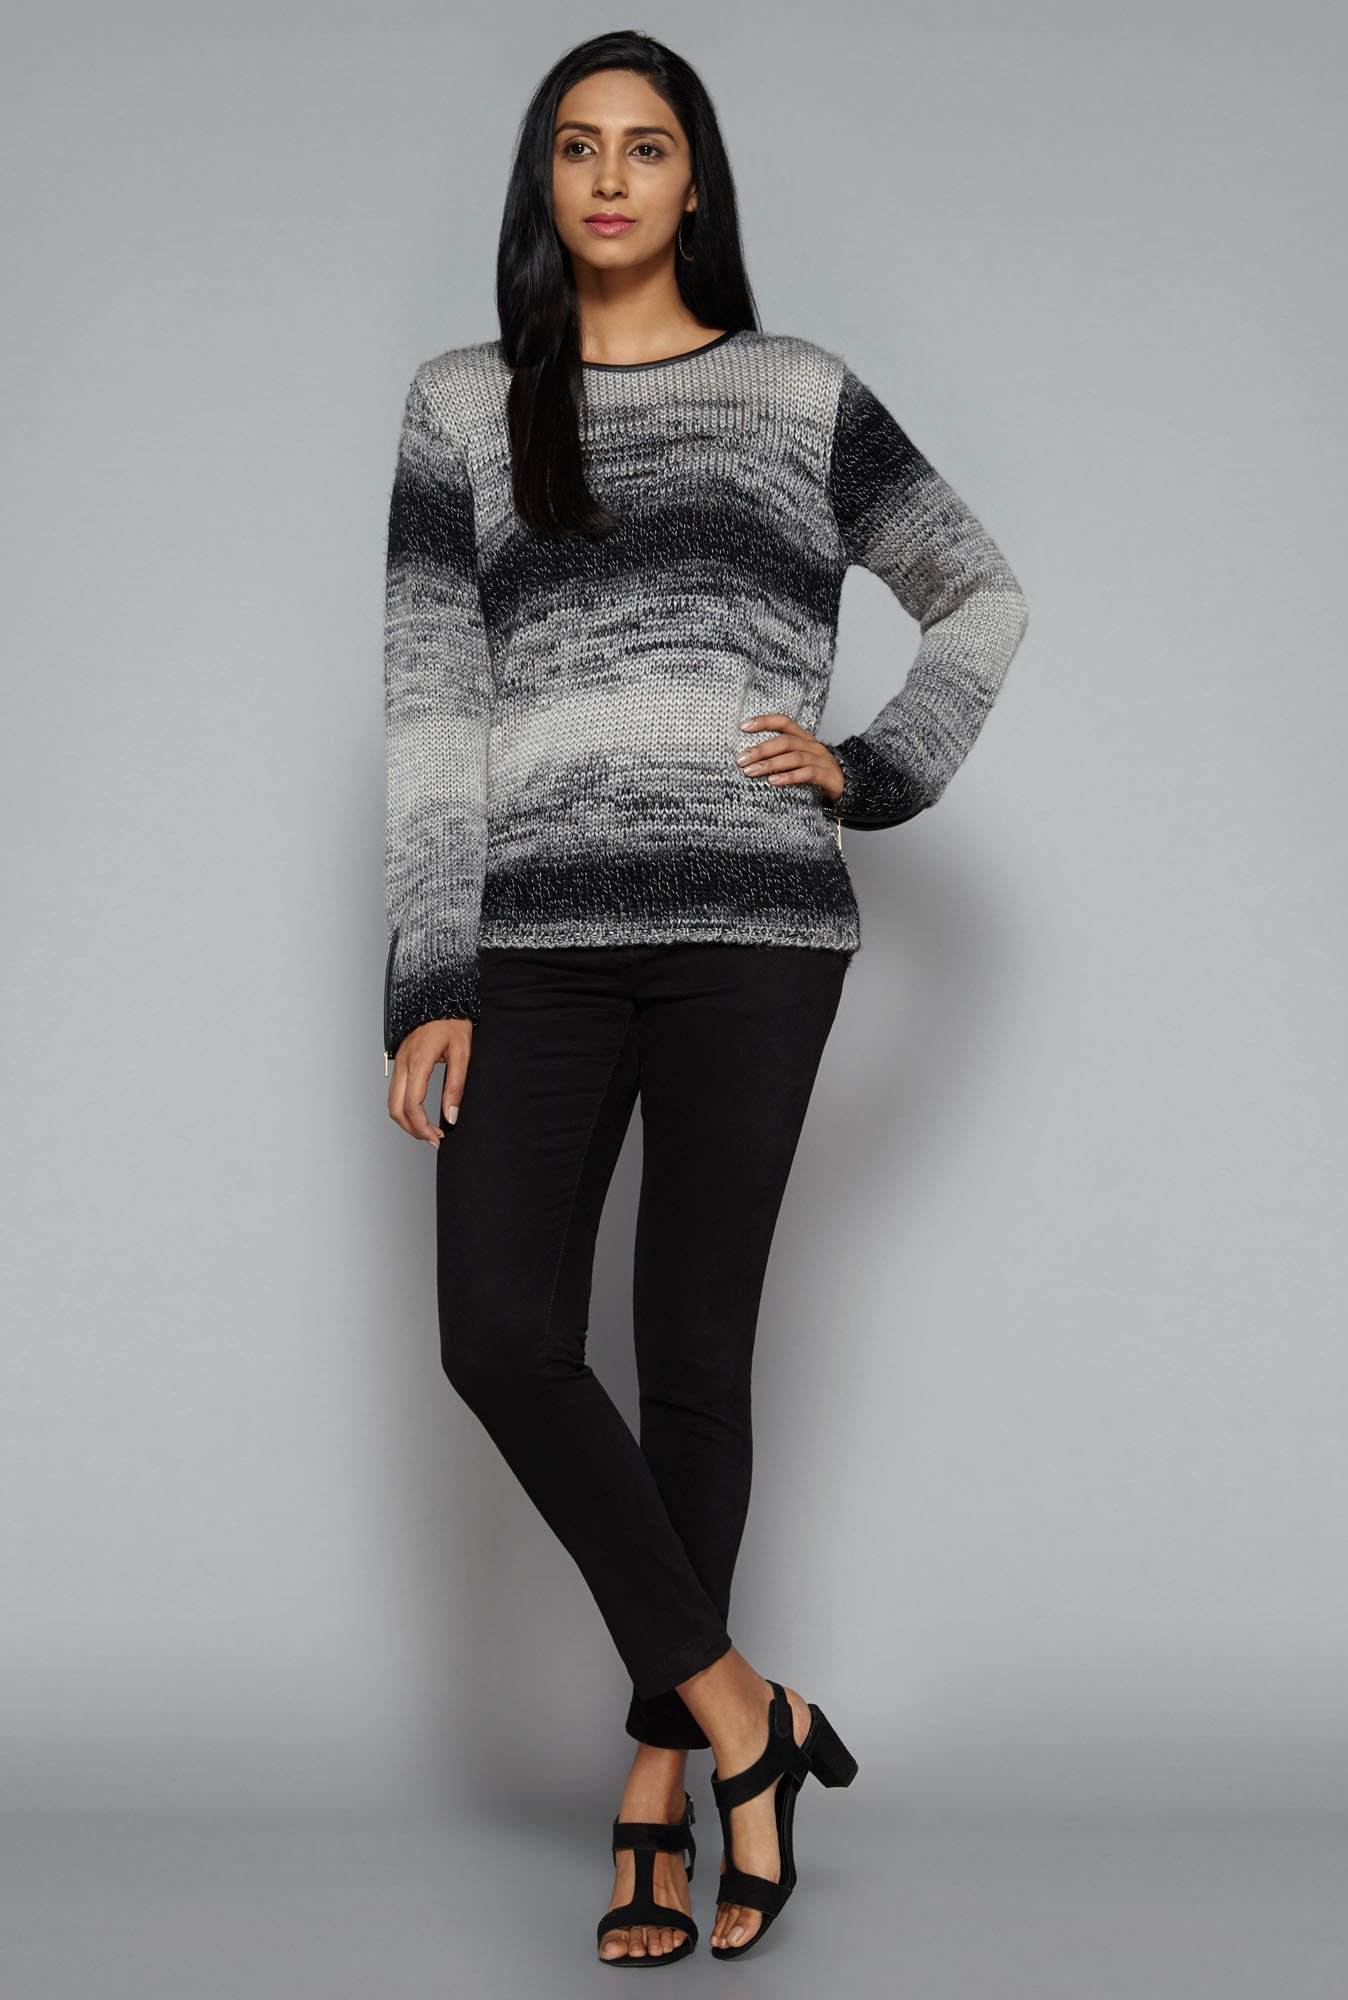 LOV by Westside Black & Grey Celinda Jumper